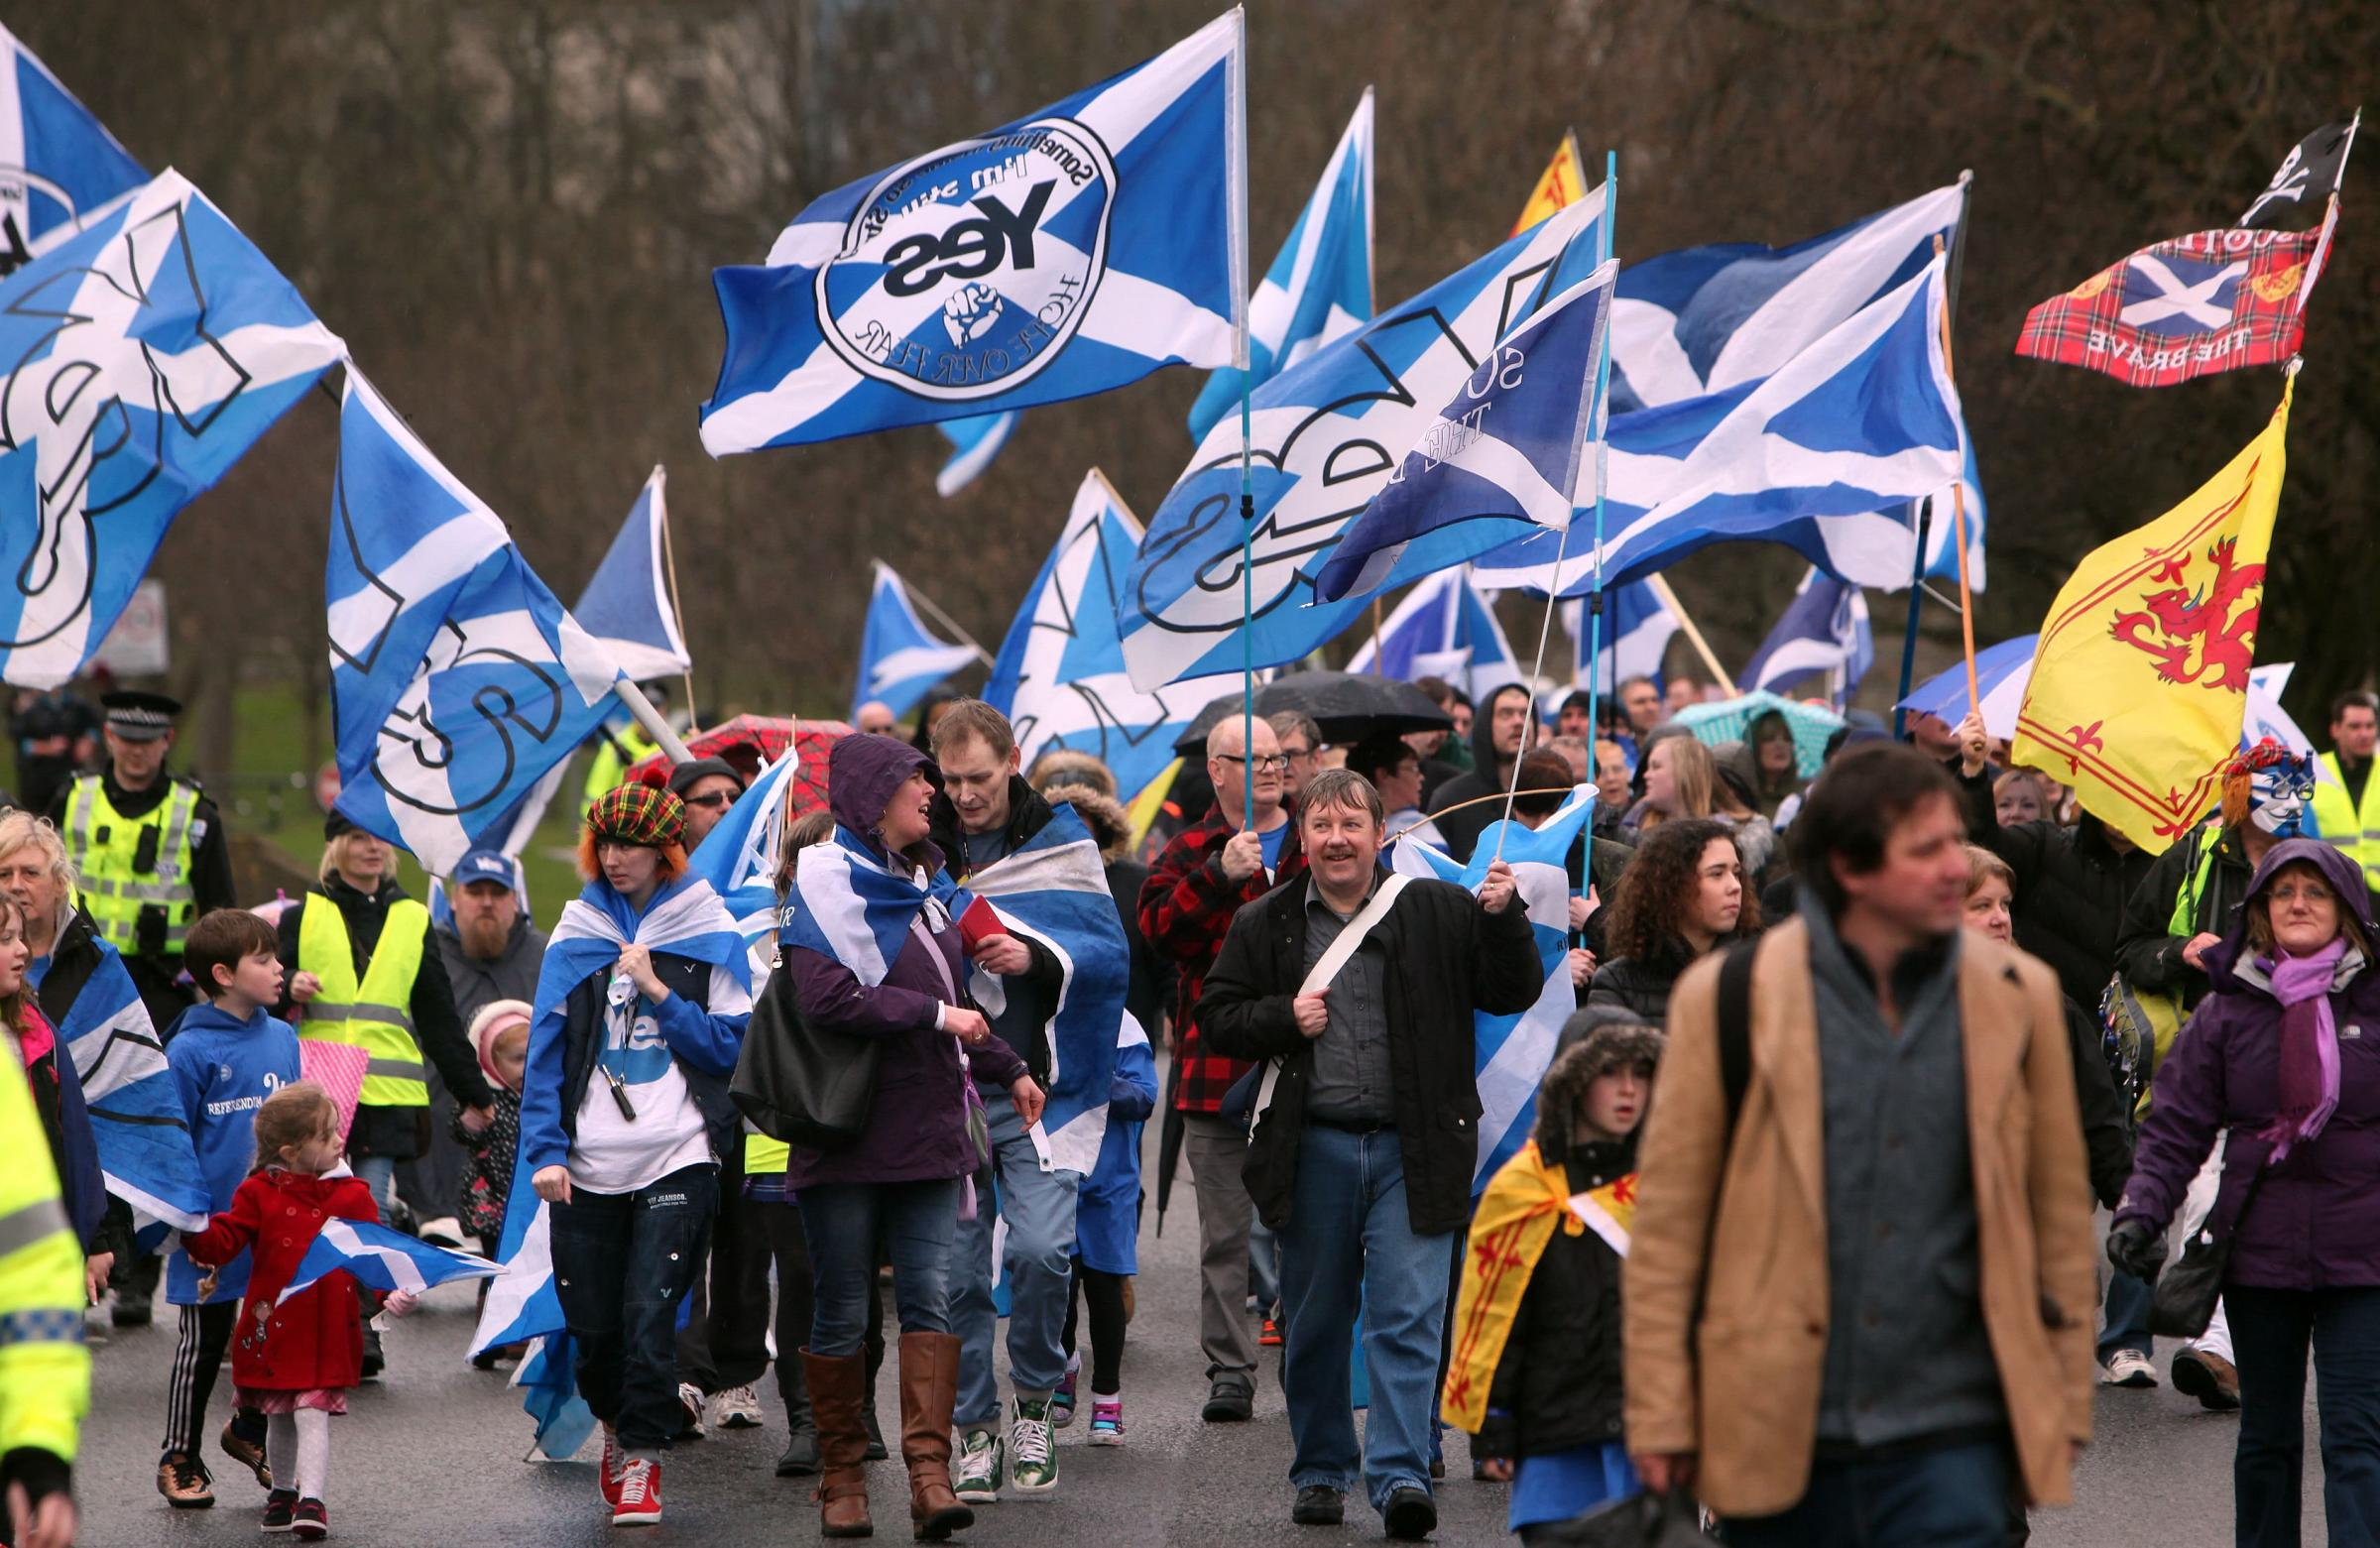 MacAskill's comments follow a series of pro-independence events across Scotland